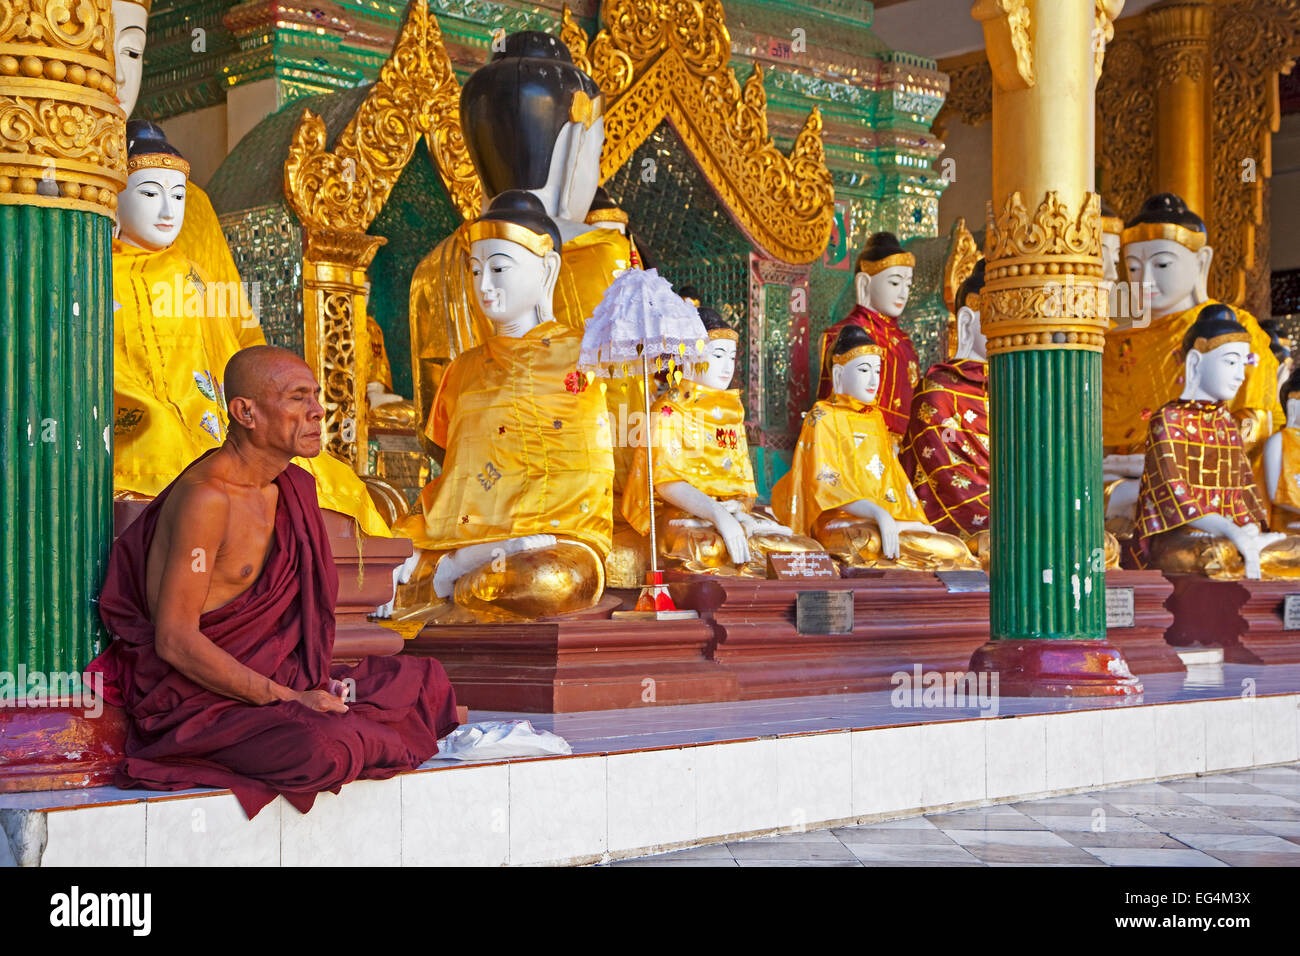 Buddhist monk praying in front of Buddha statues in the Shwedagon Zedi Daw Pagoda at Yangon / Rangoon, Myanmar / - Stock Image